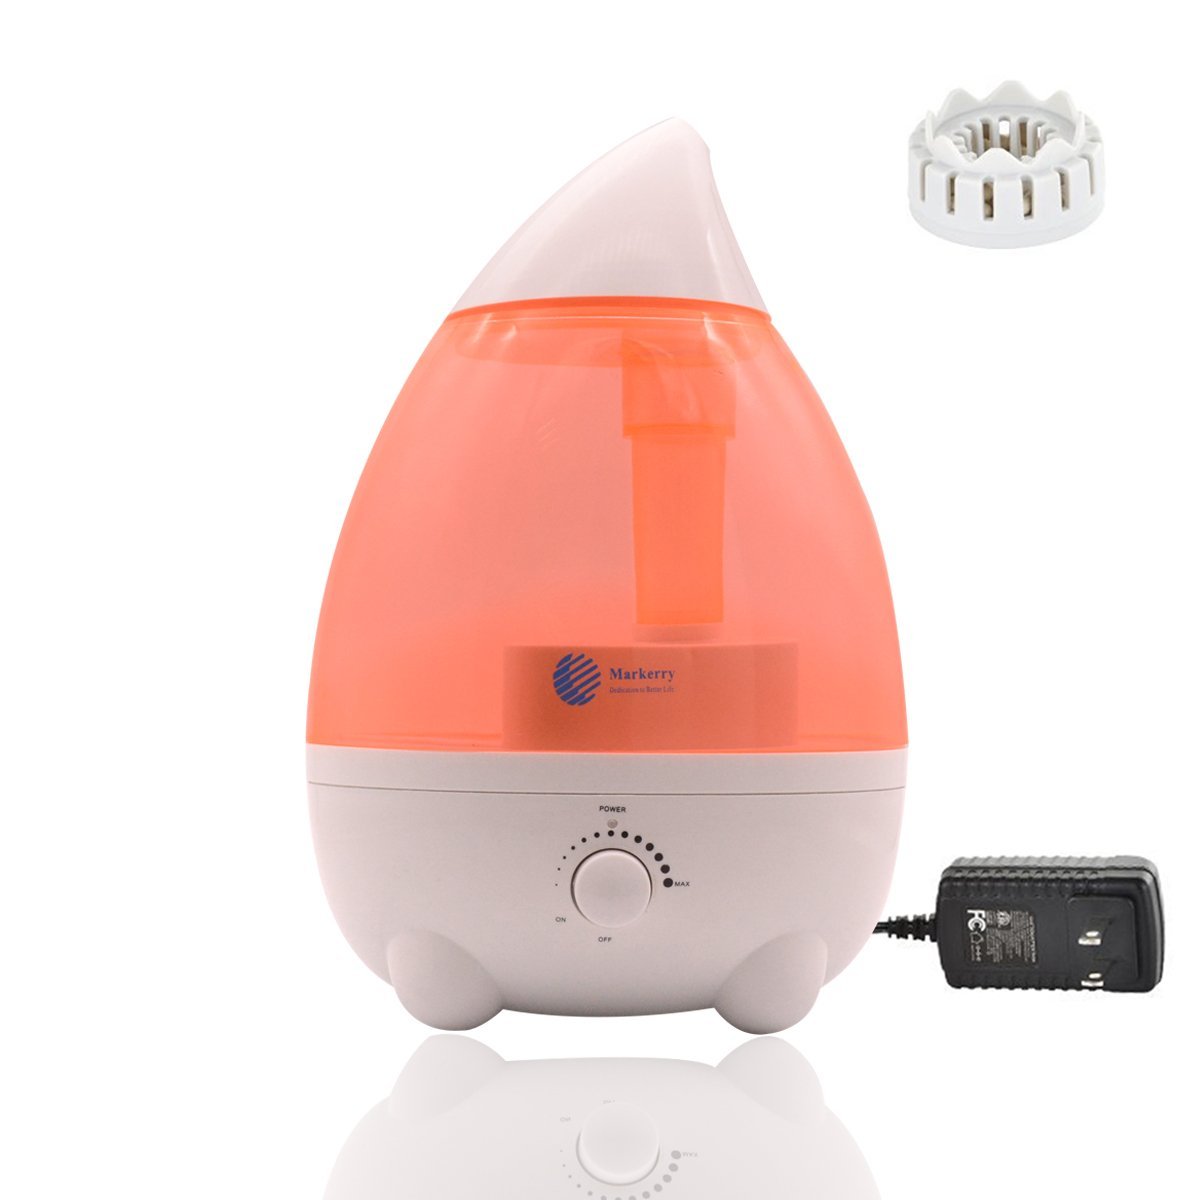 Humidifiers For Bedroom Baby Room Office Yoga Home Large Capacity 2.6L/0.68Gal Ultra Quiet With Waterless Auto Shut Off Protection Pink